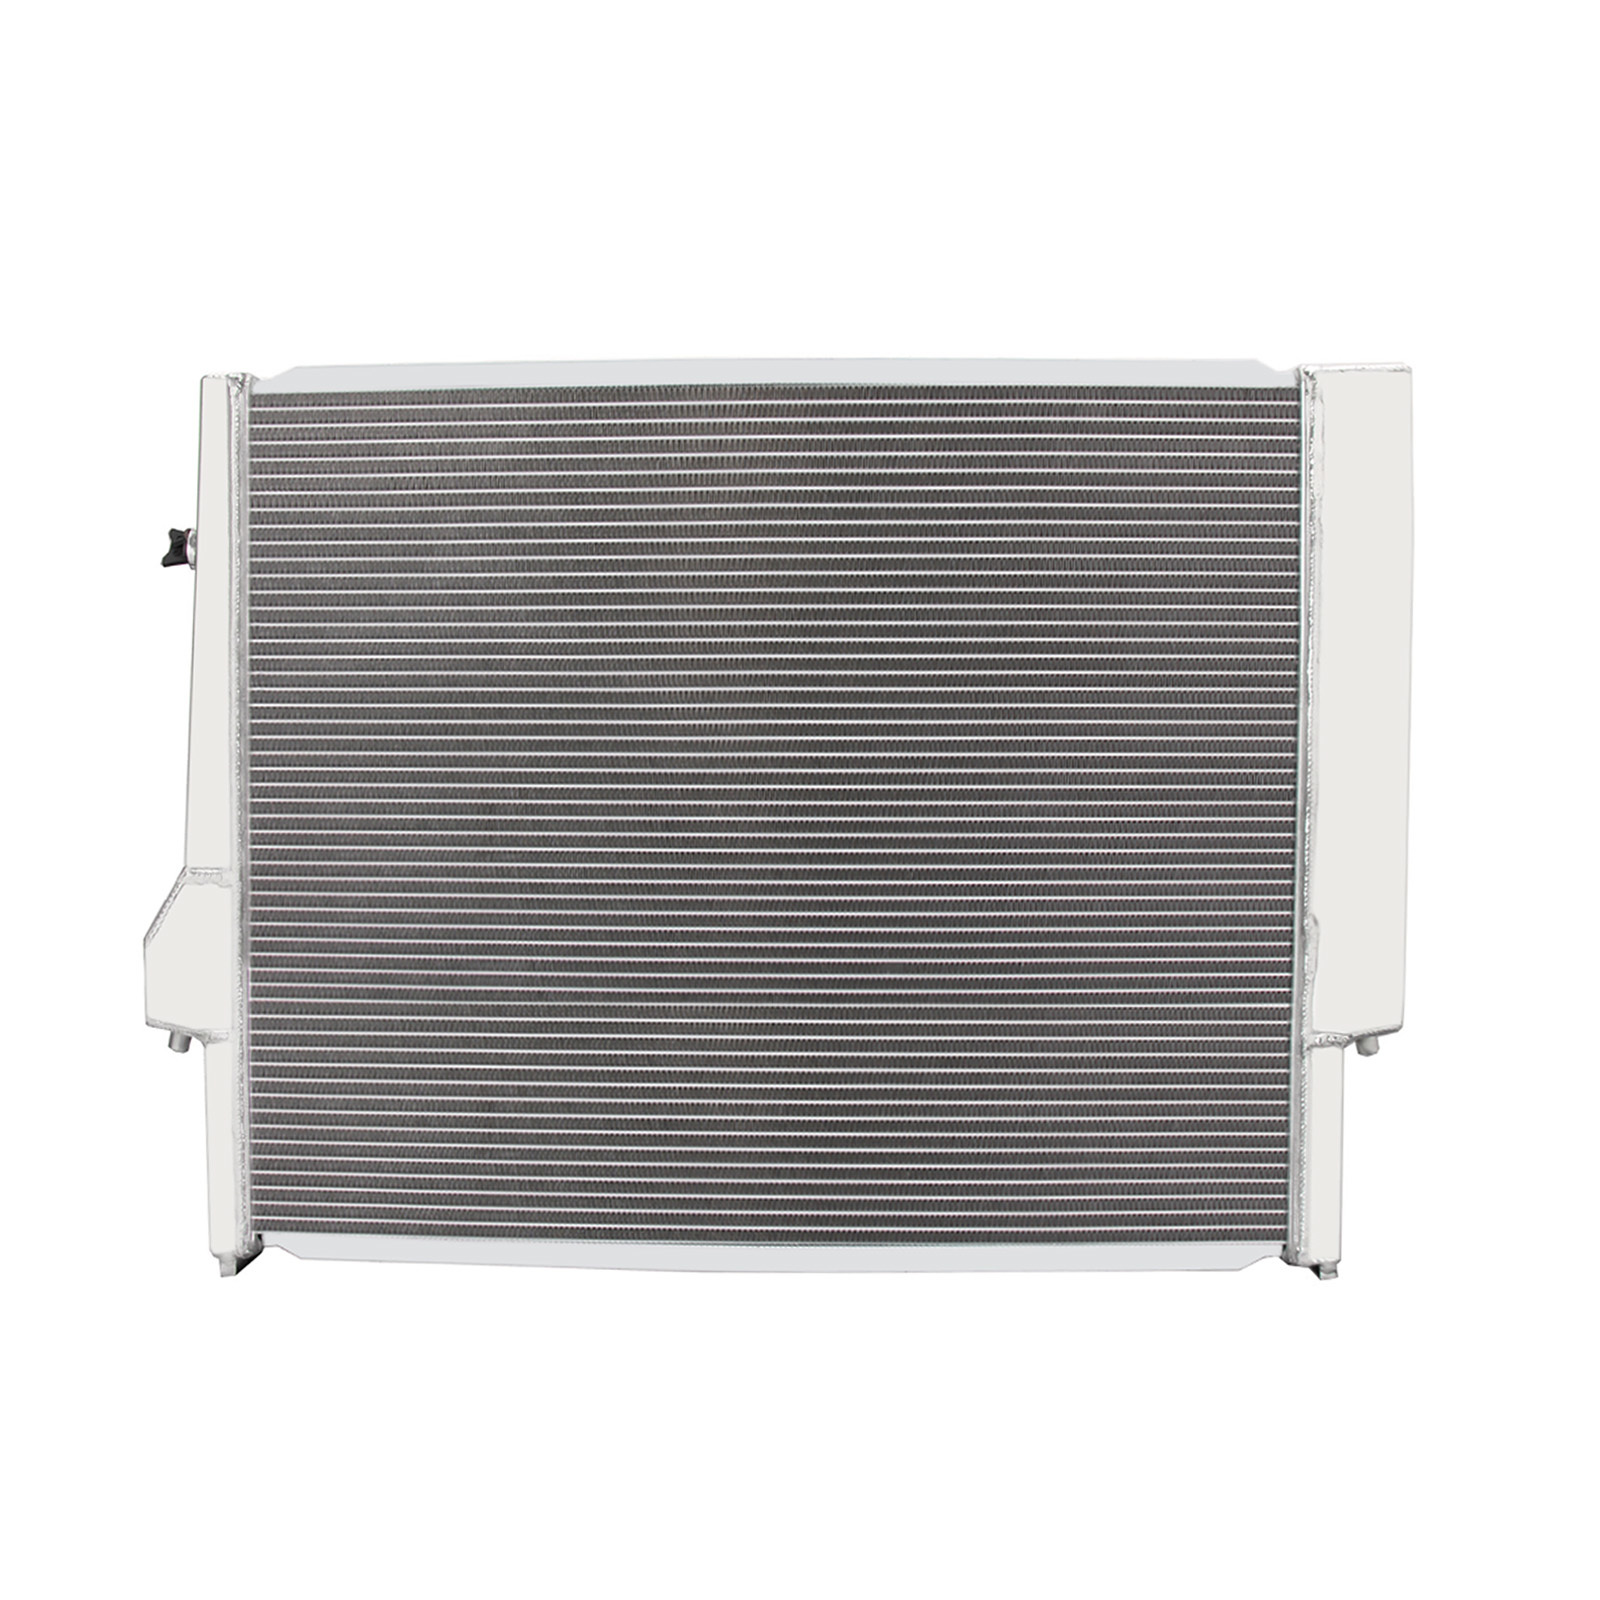 1841 Full Aluminum Racing Radiator for BMW M3 325' E32 1992-2000 MT